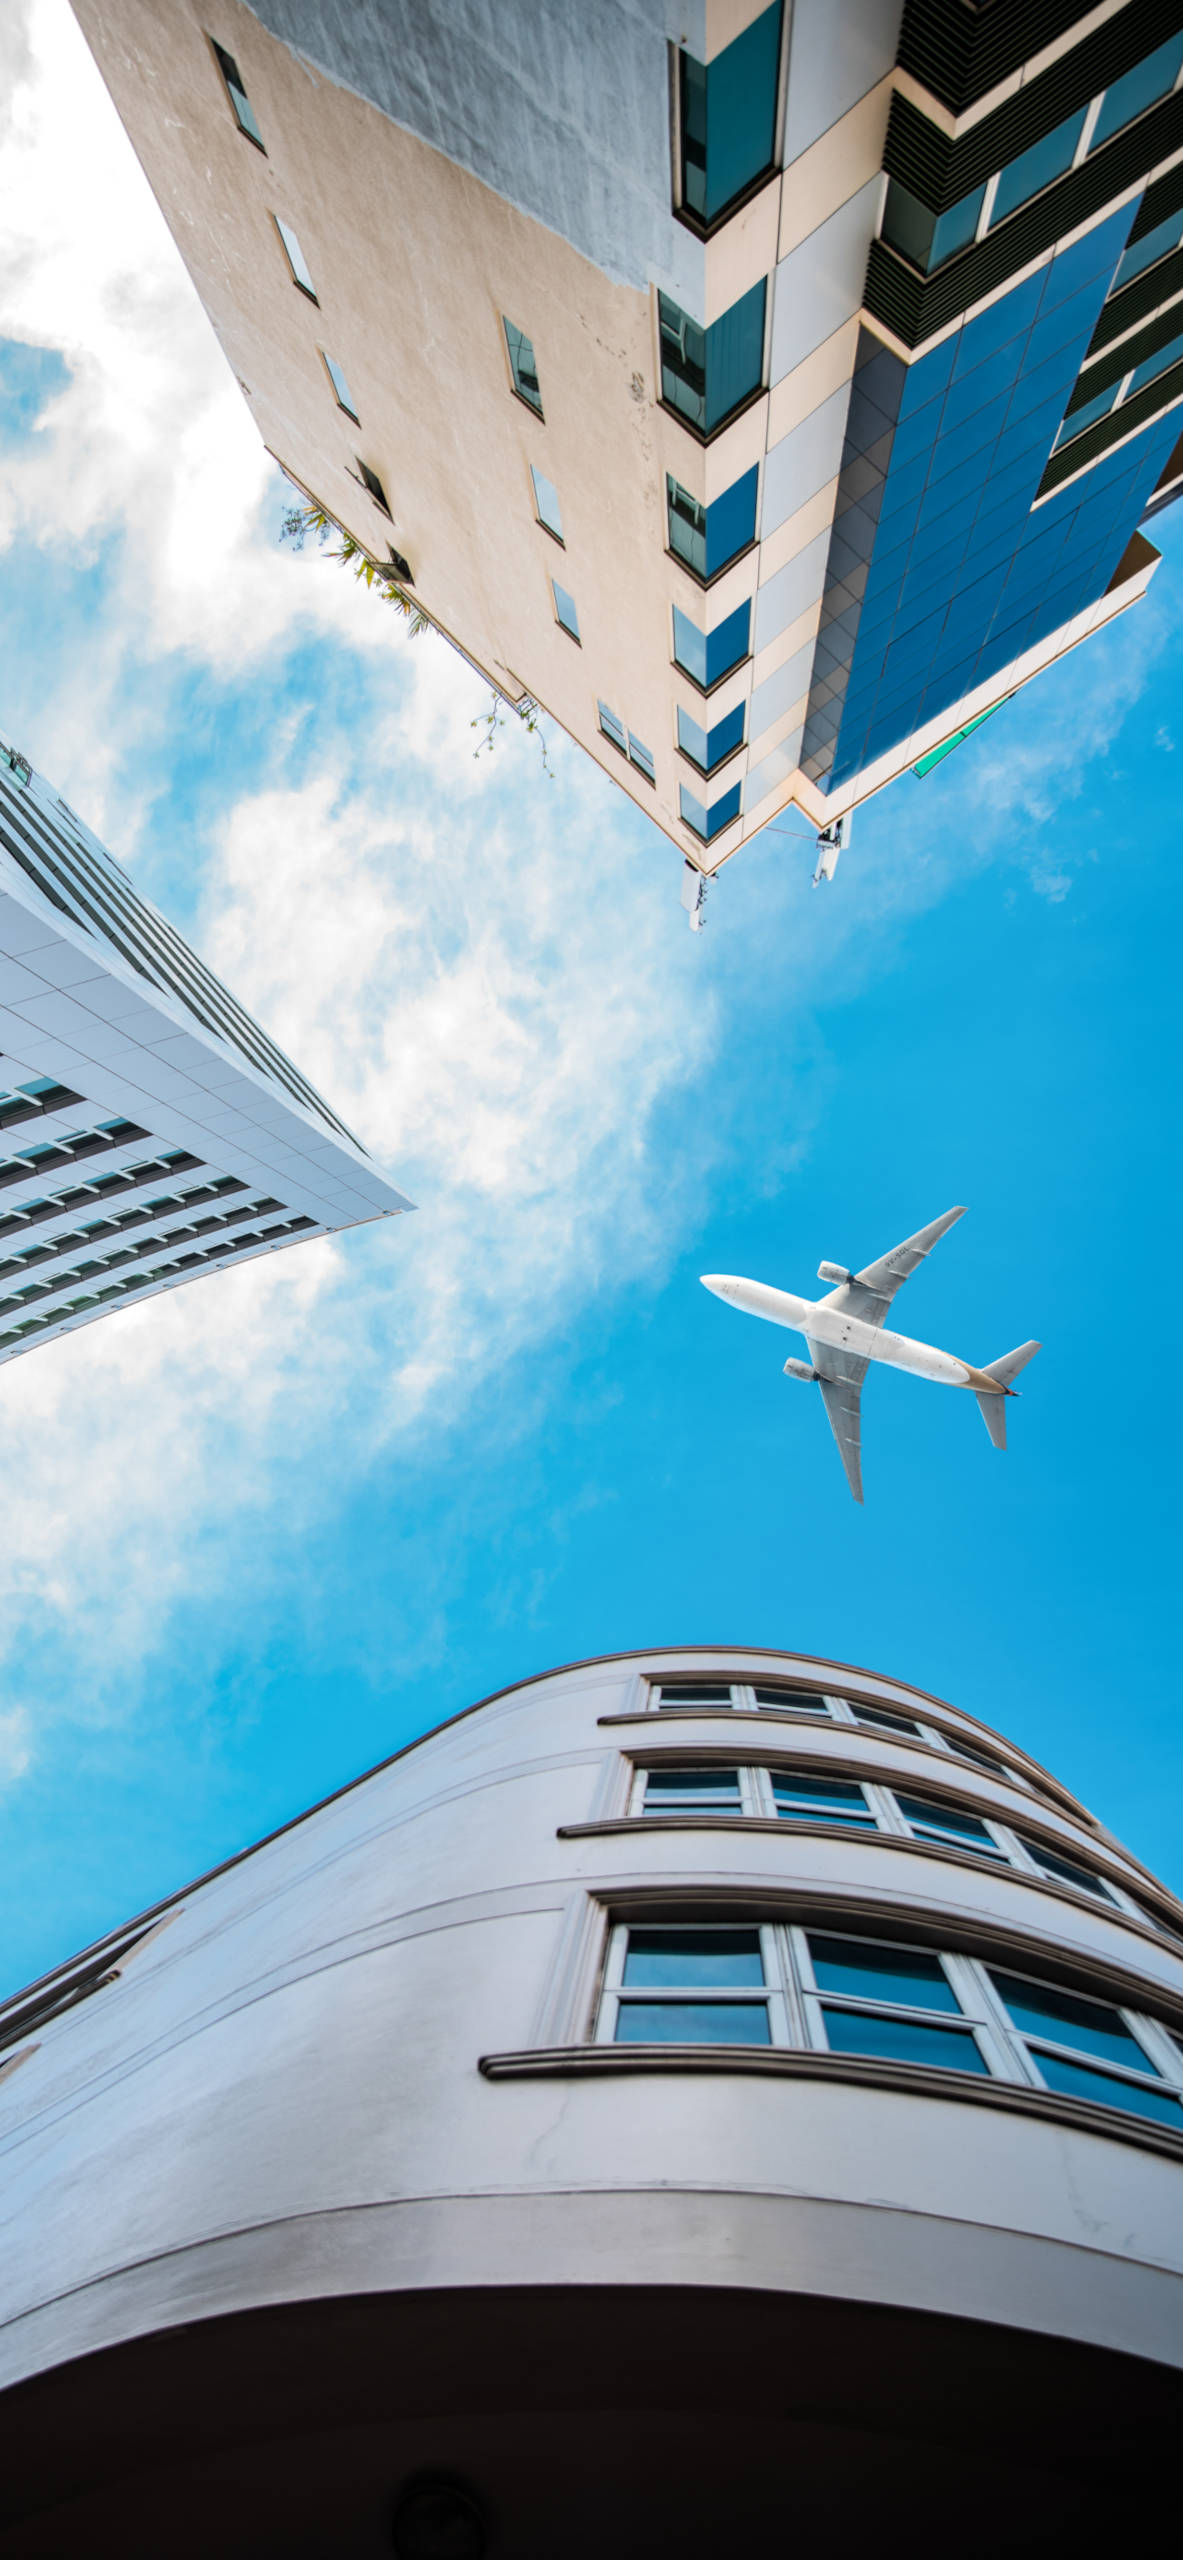 iPhone wallpapers airplane low angle building Airplane